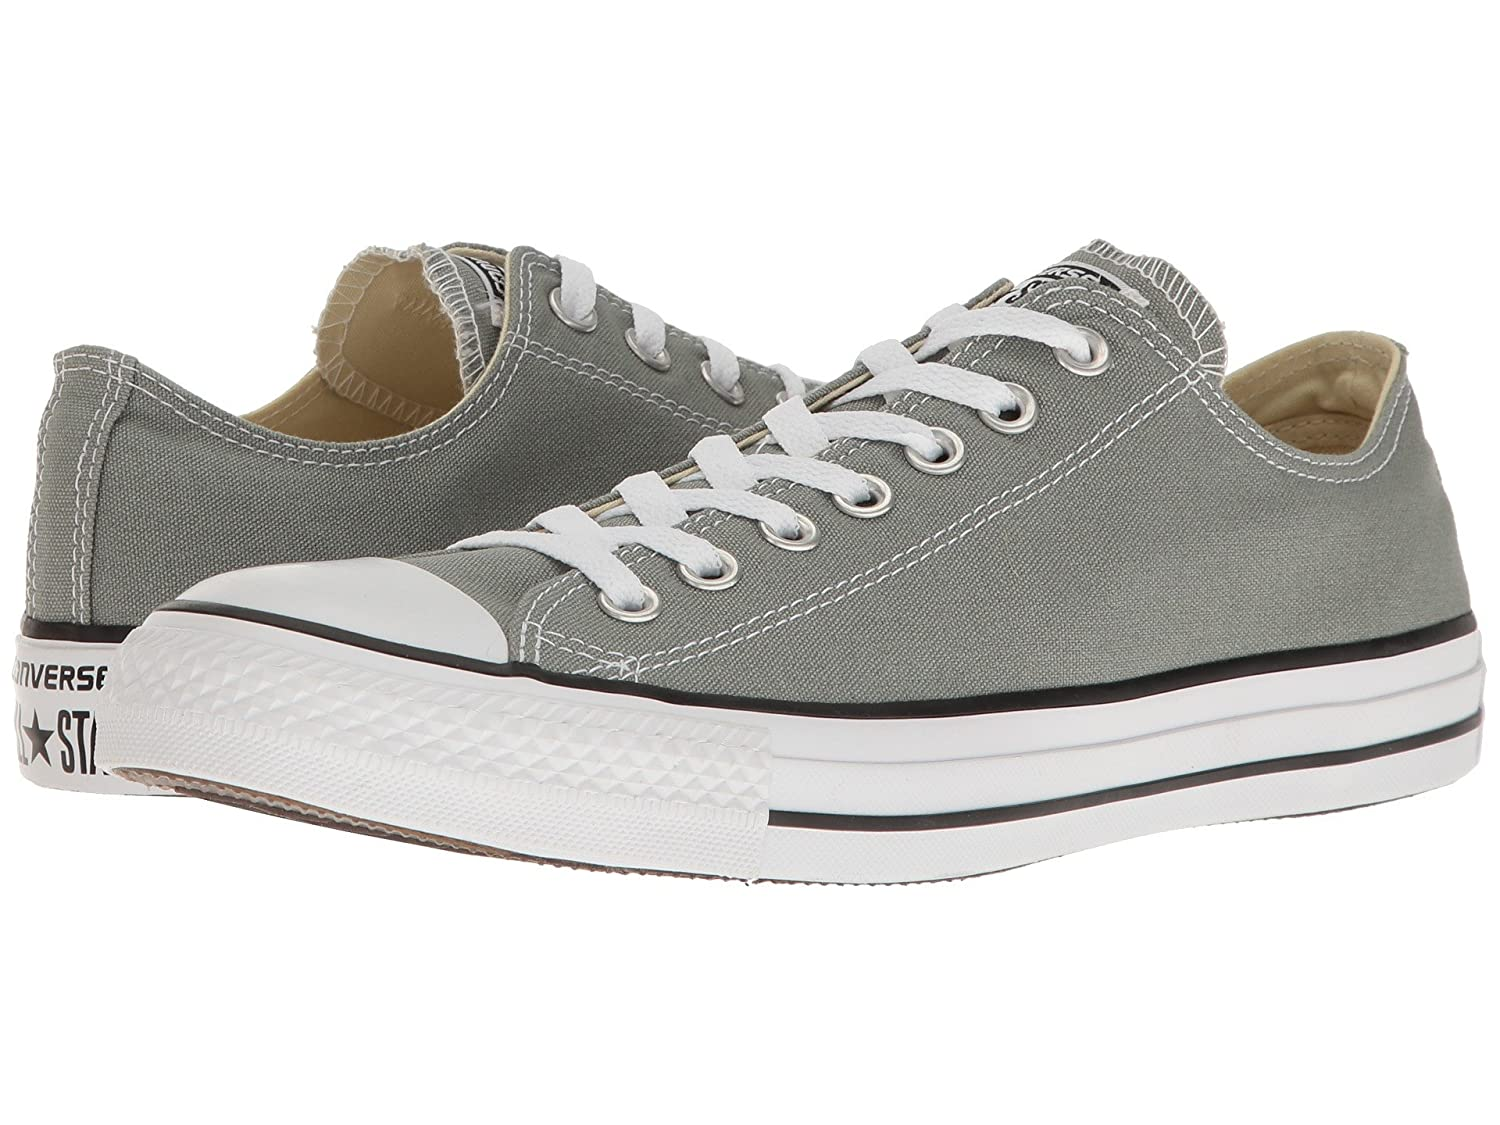 Converse Chuck Taylor All Star Seasonal Colors Ox B01HSGU5A8 Men's 3, Women's 5 Medium|multi